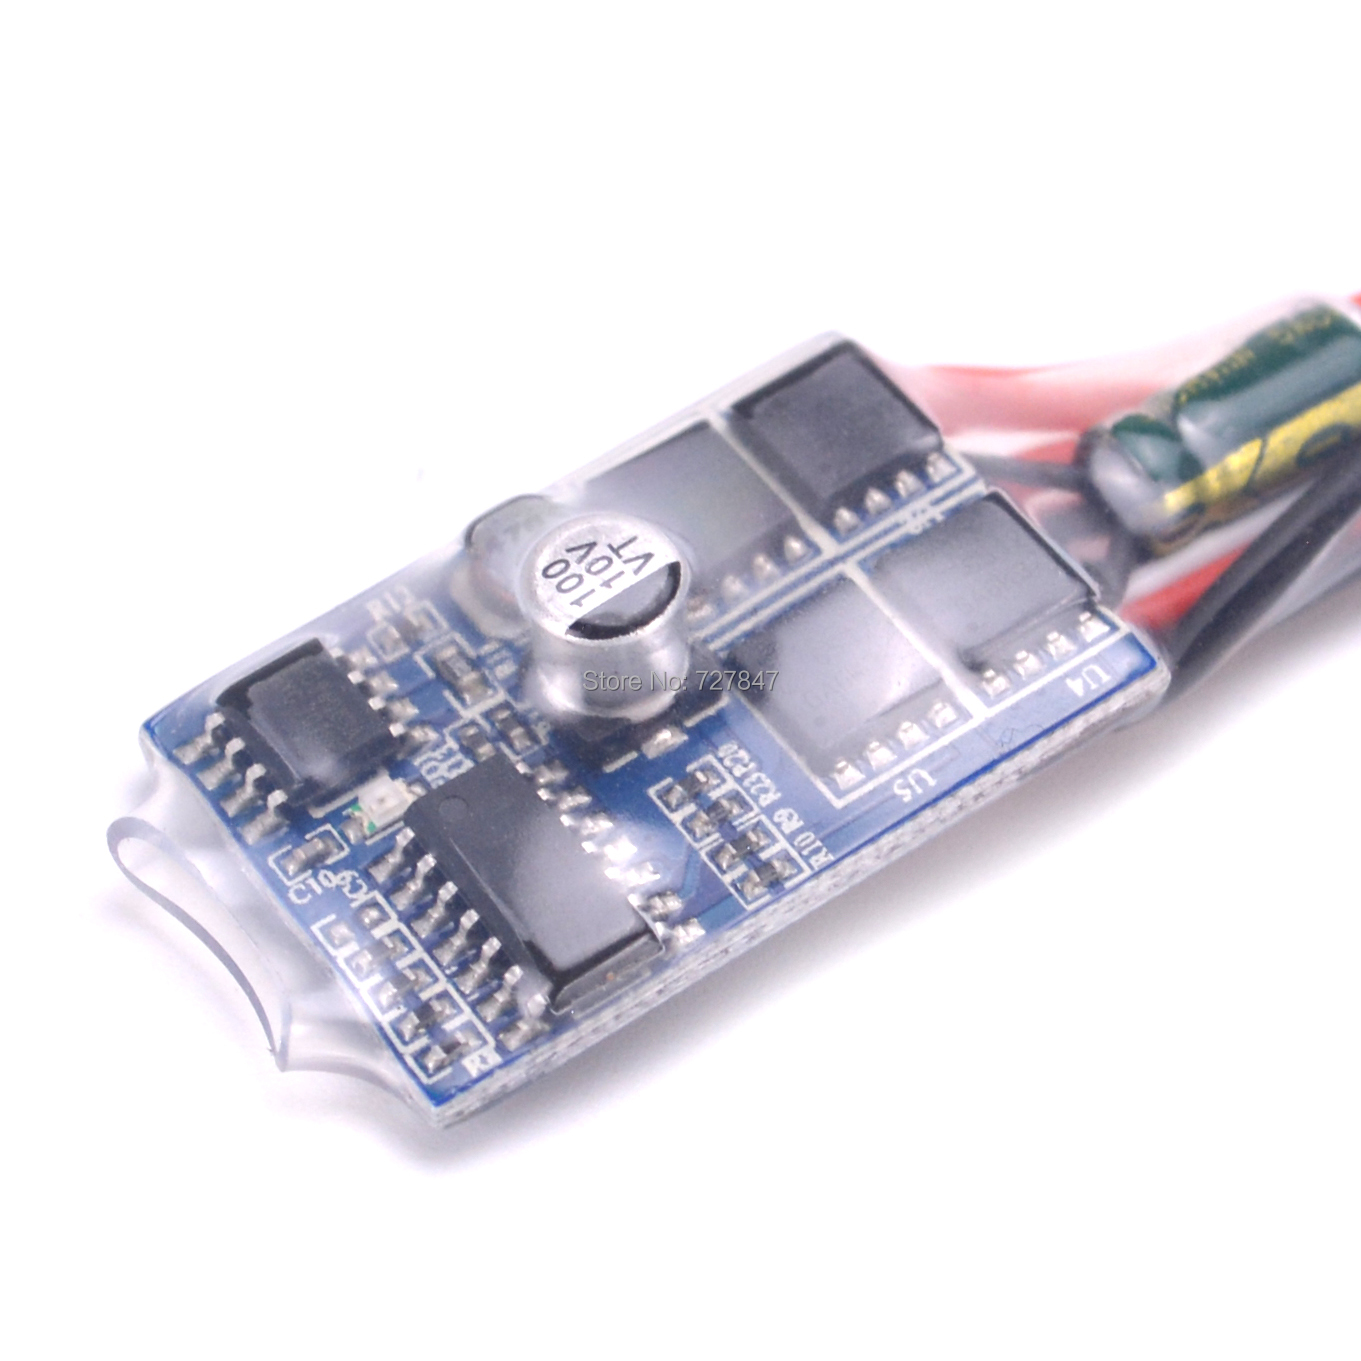 1pcs/2pcs <font><b>30A</b></font> <font><b>ESC</b></font> <font><b>Brushed</b></font> <font><b>ESC</b></font> Motor Electric Speed Controller without / with Brake for DIY Mini RC Car Boat Tank image